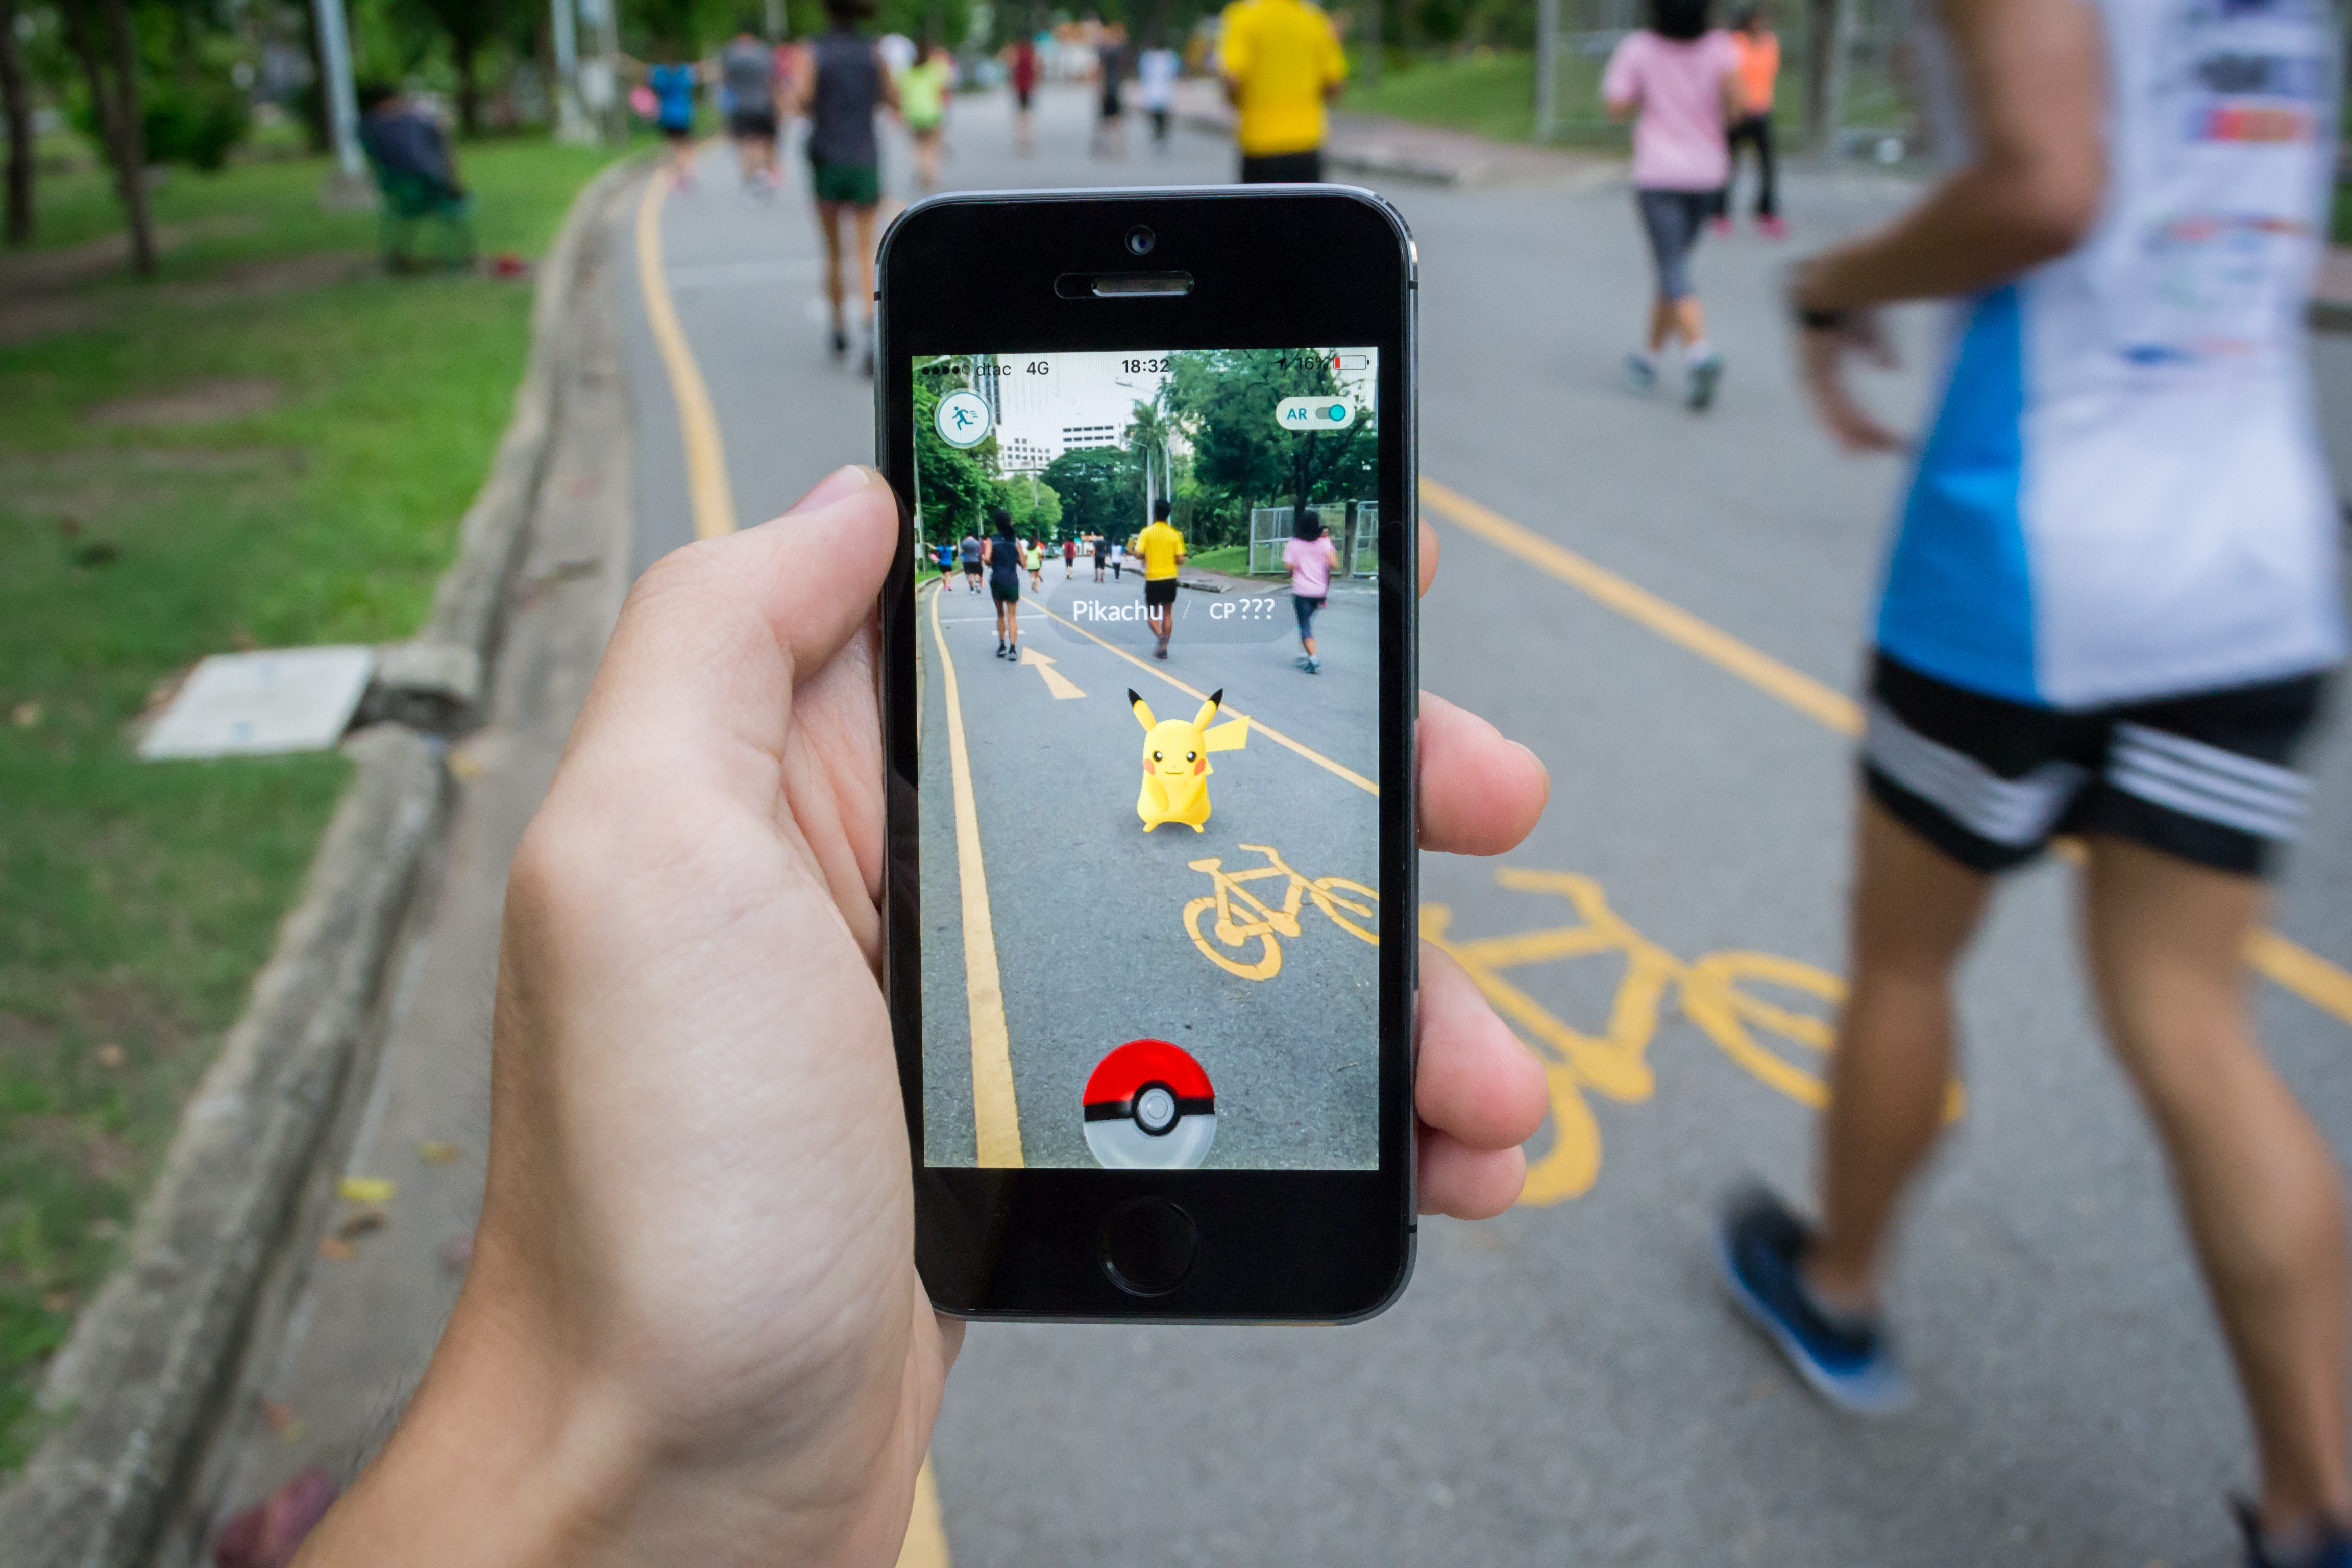 Meet the grandmother who uses Pokémon Go to reconnect with